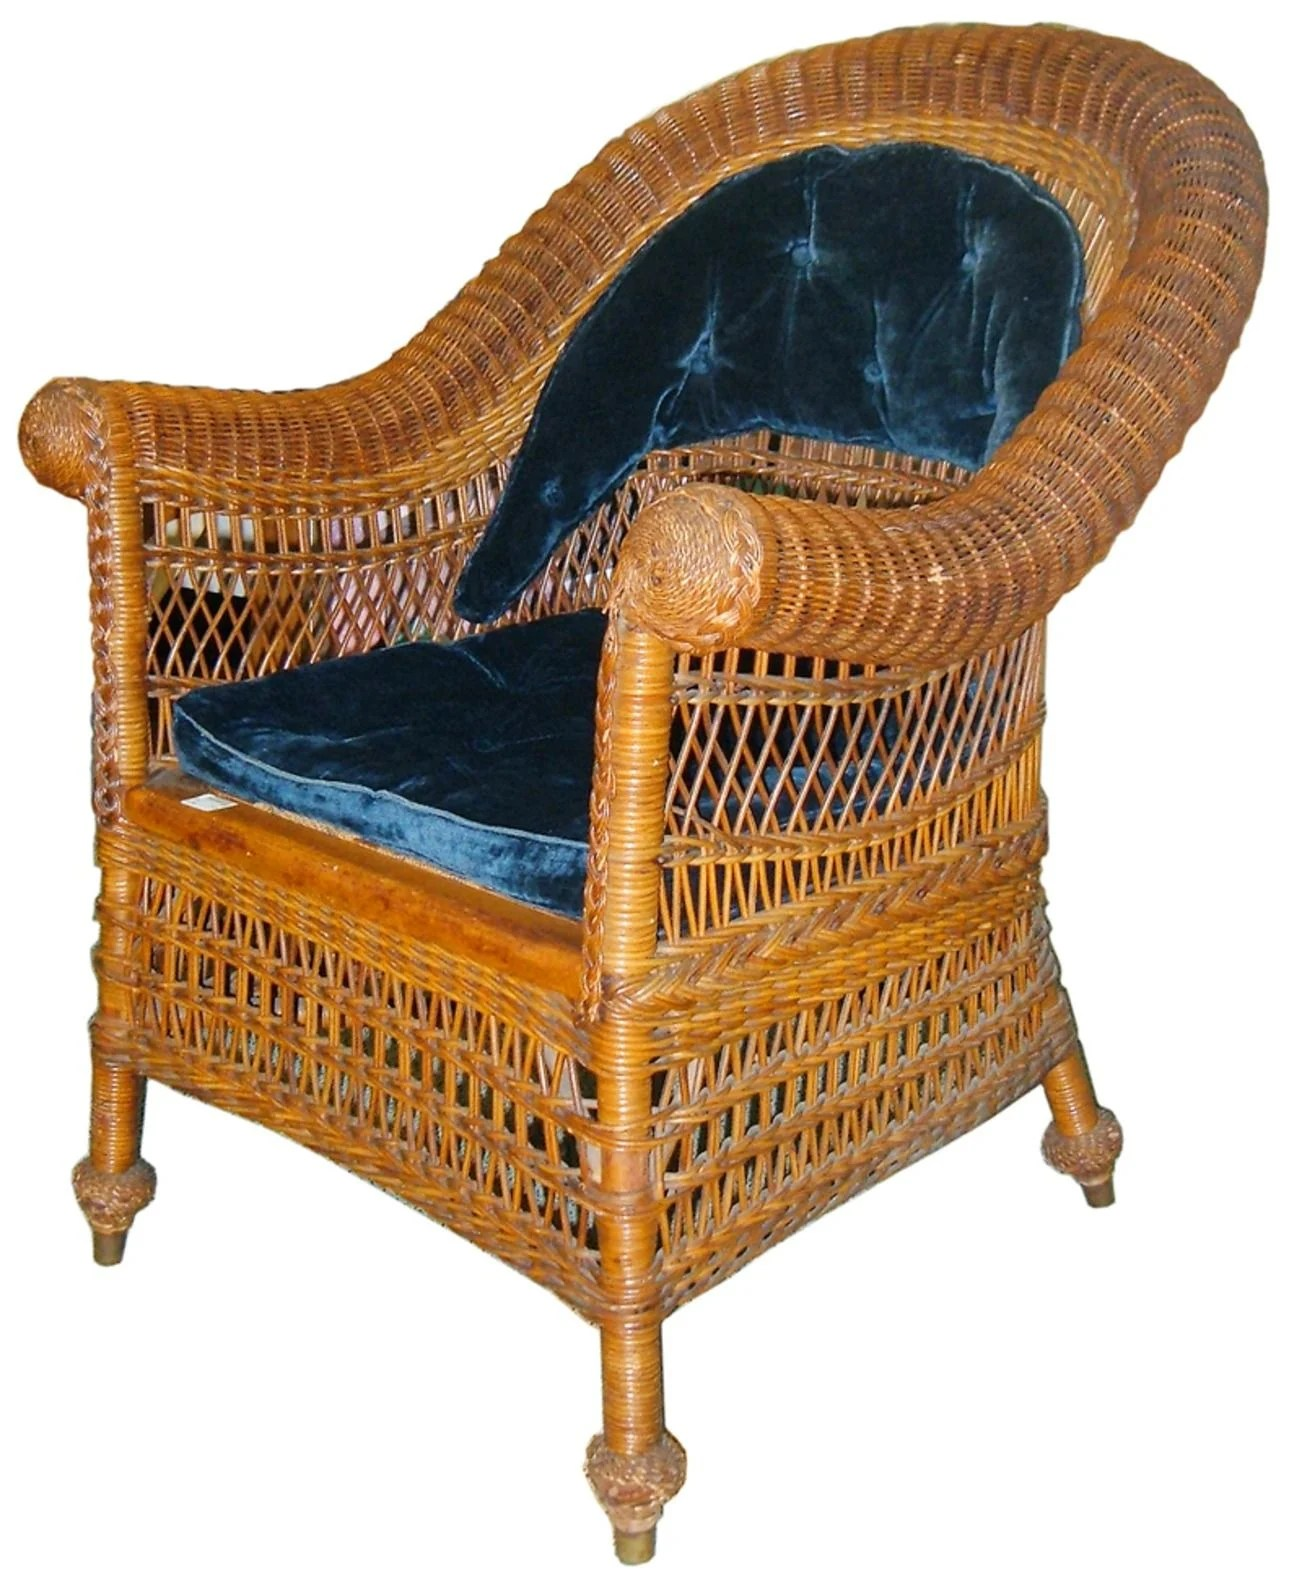 Jean McClelland  Antique wicker can be identified by their wood     Jean McClelland  Antique wicker can be identified by their wood frames